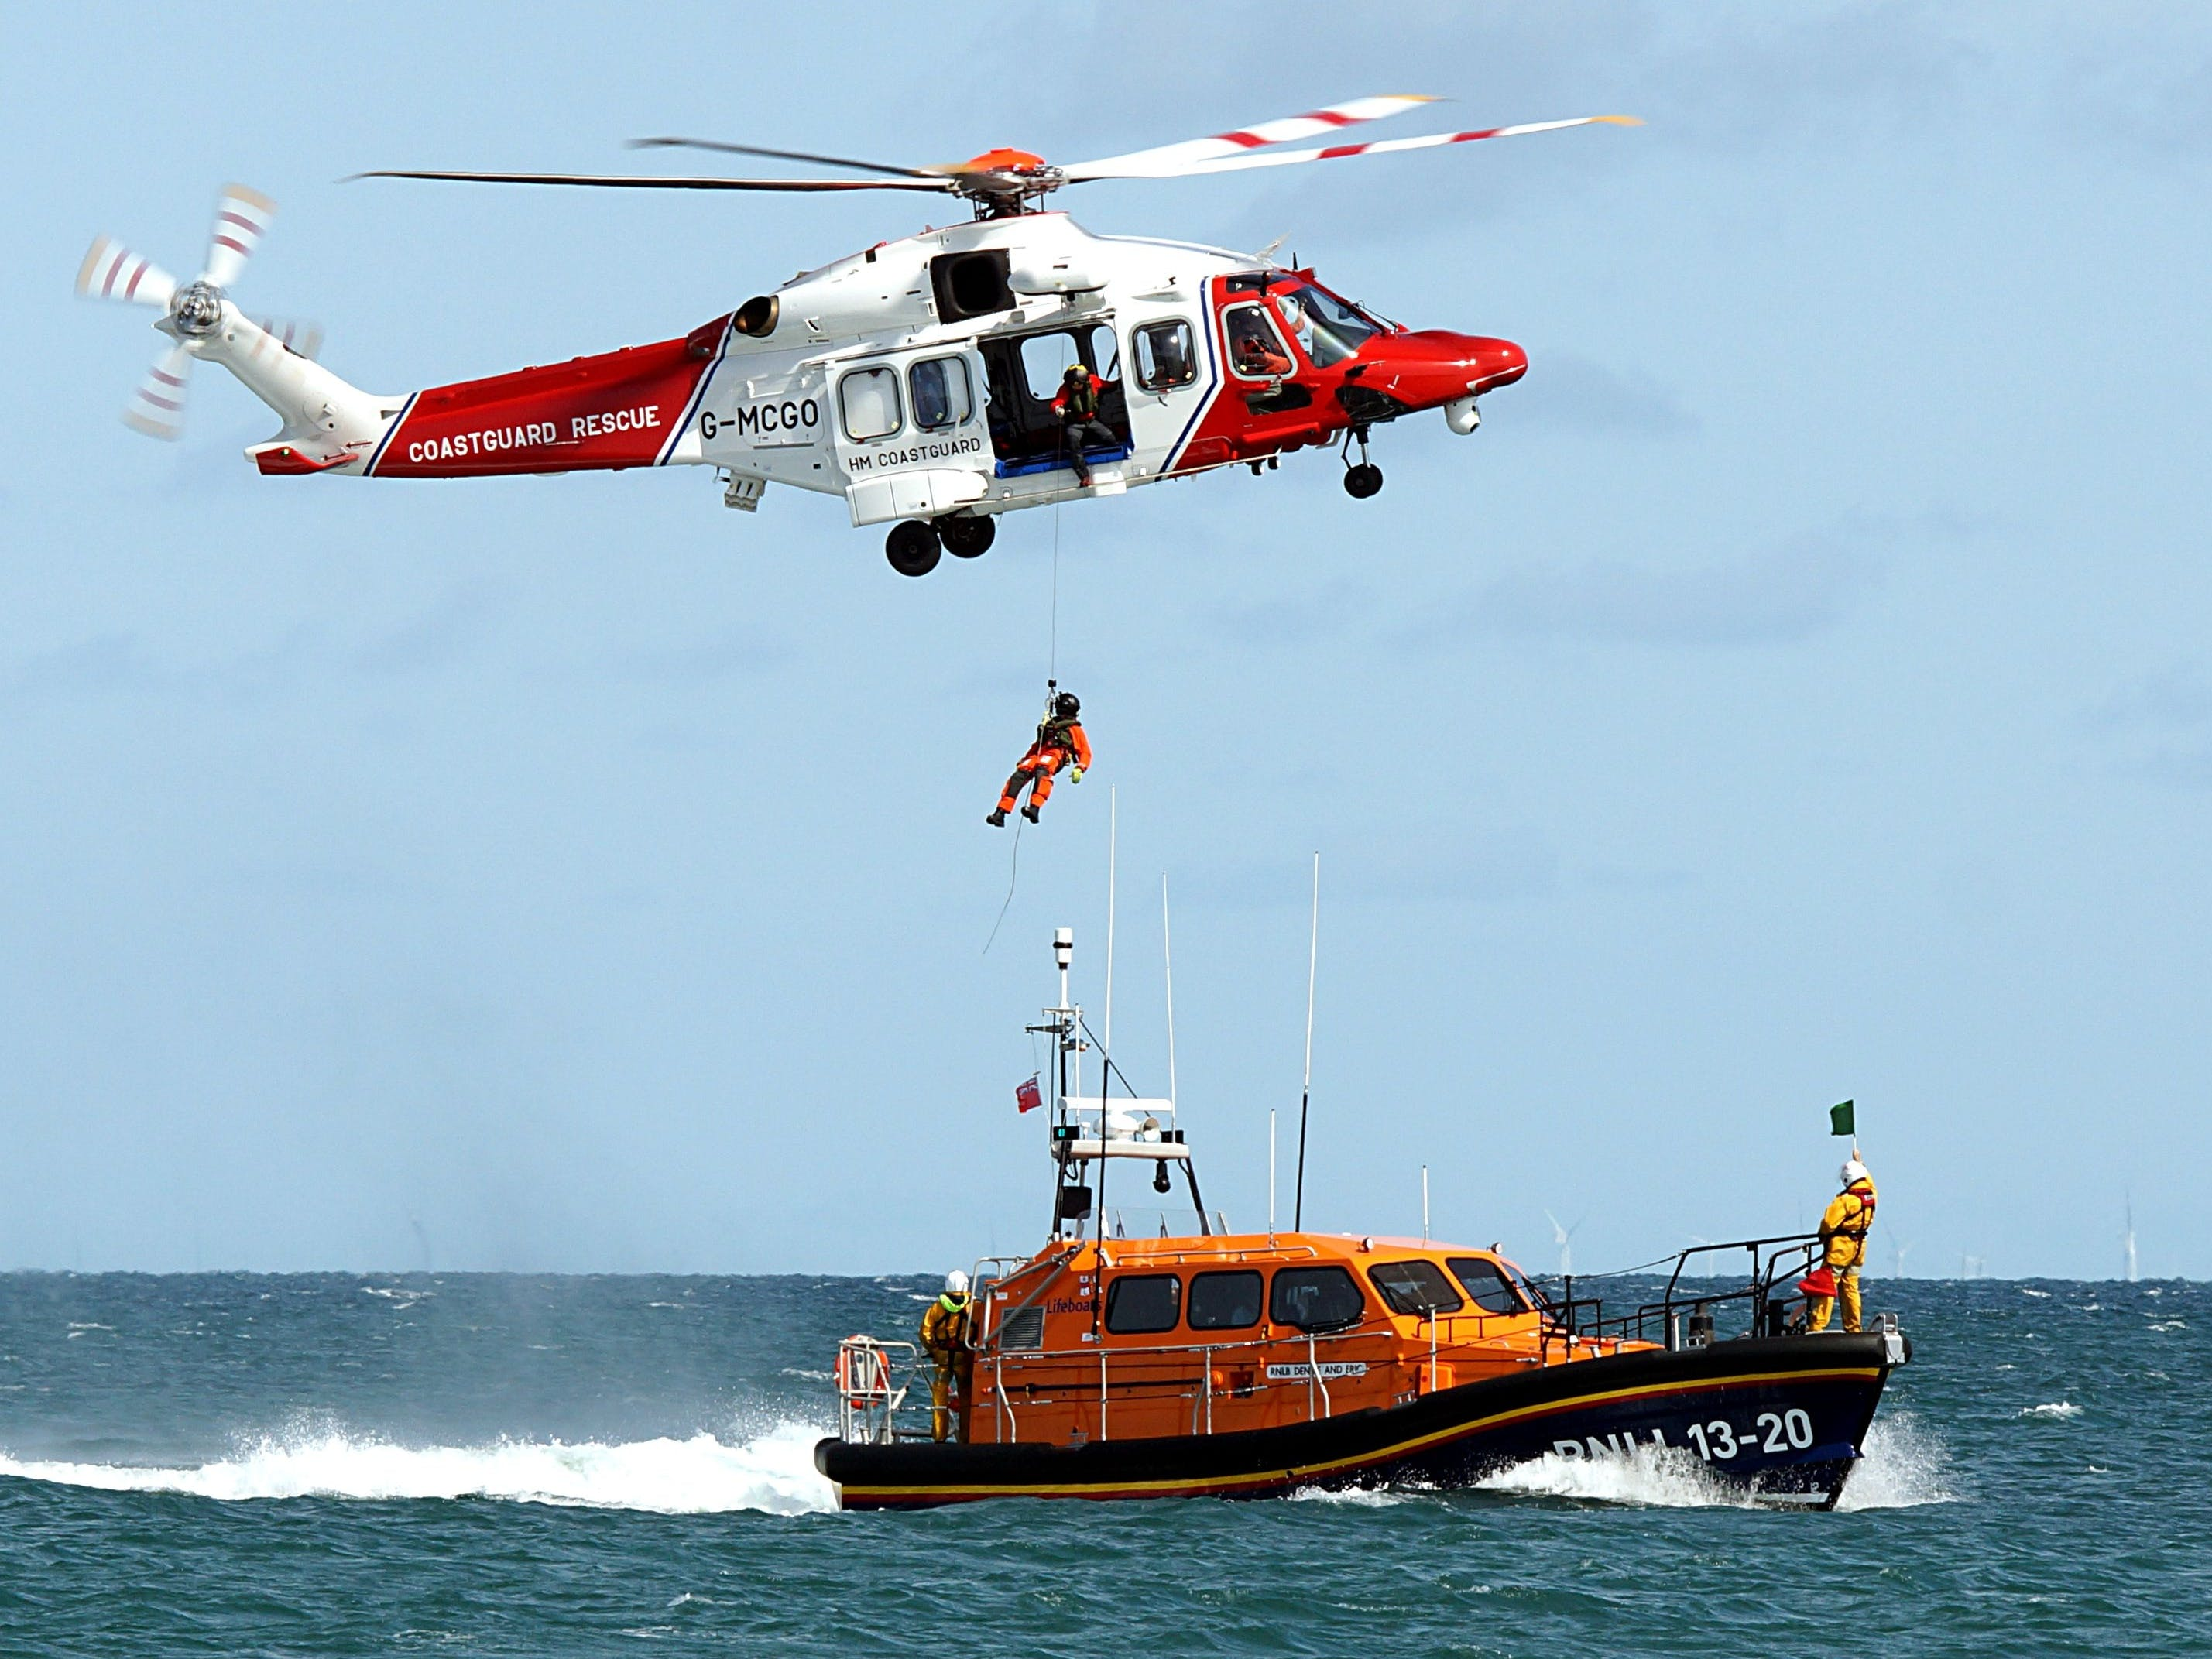 Coastguard helicopter hovering over the lifeboat during a manouvre